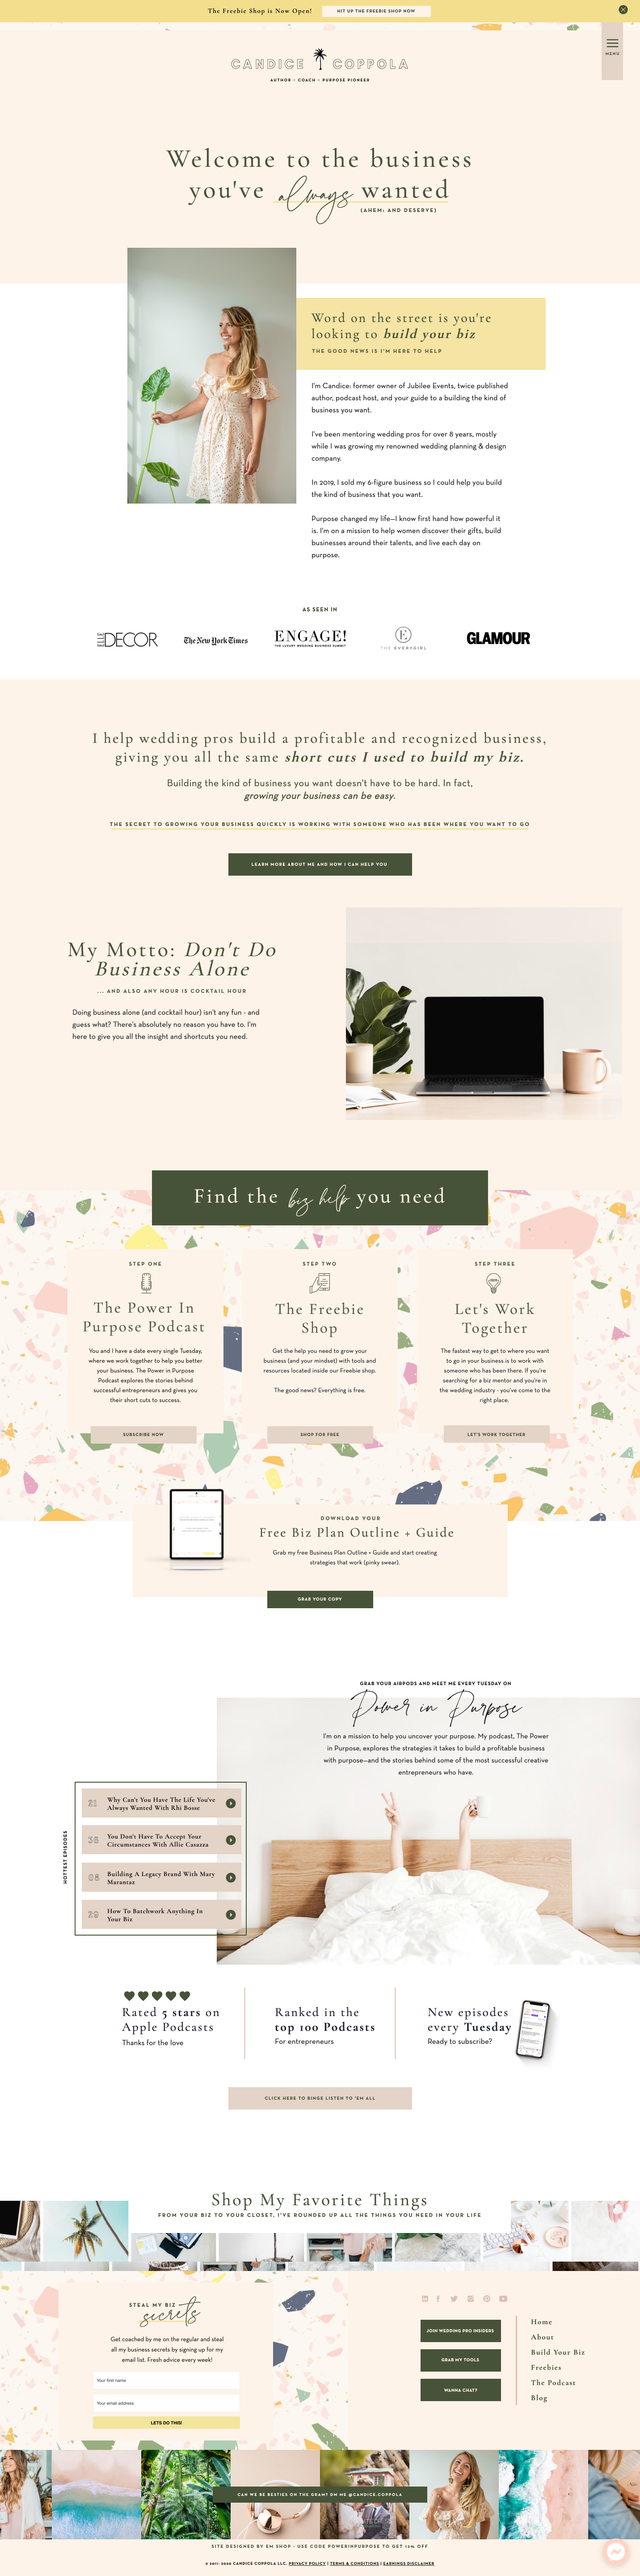 Showit Website template by Elizabeth McCravy for wedding industry business coach, Candice Coppola. Customized showit template for coaches & online business owners.